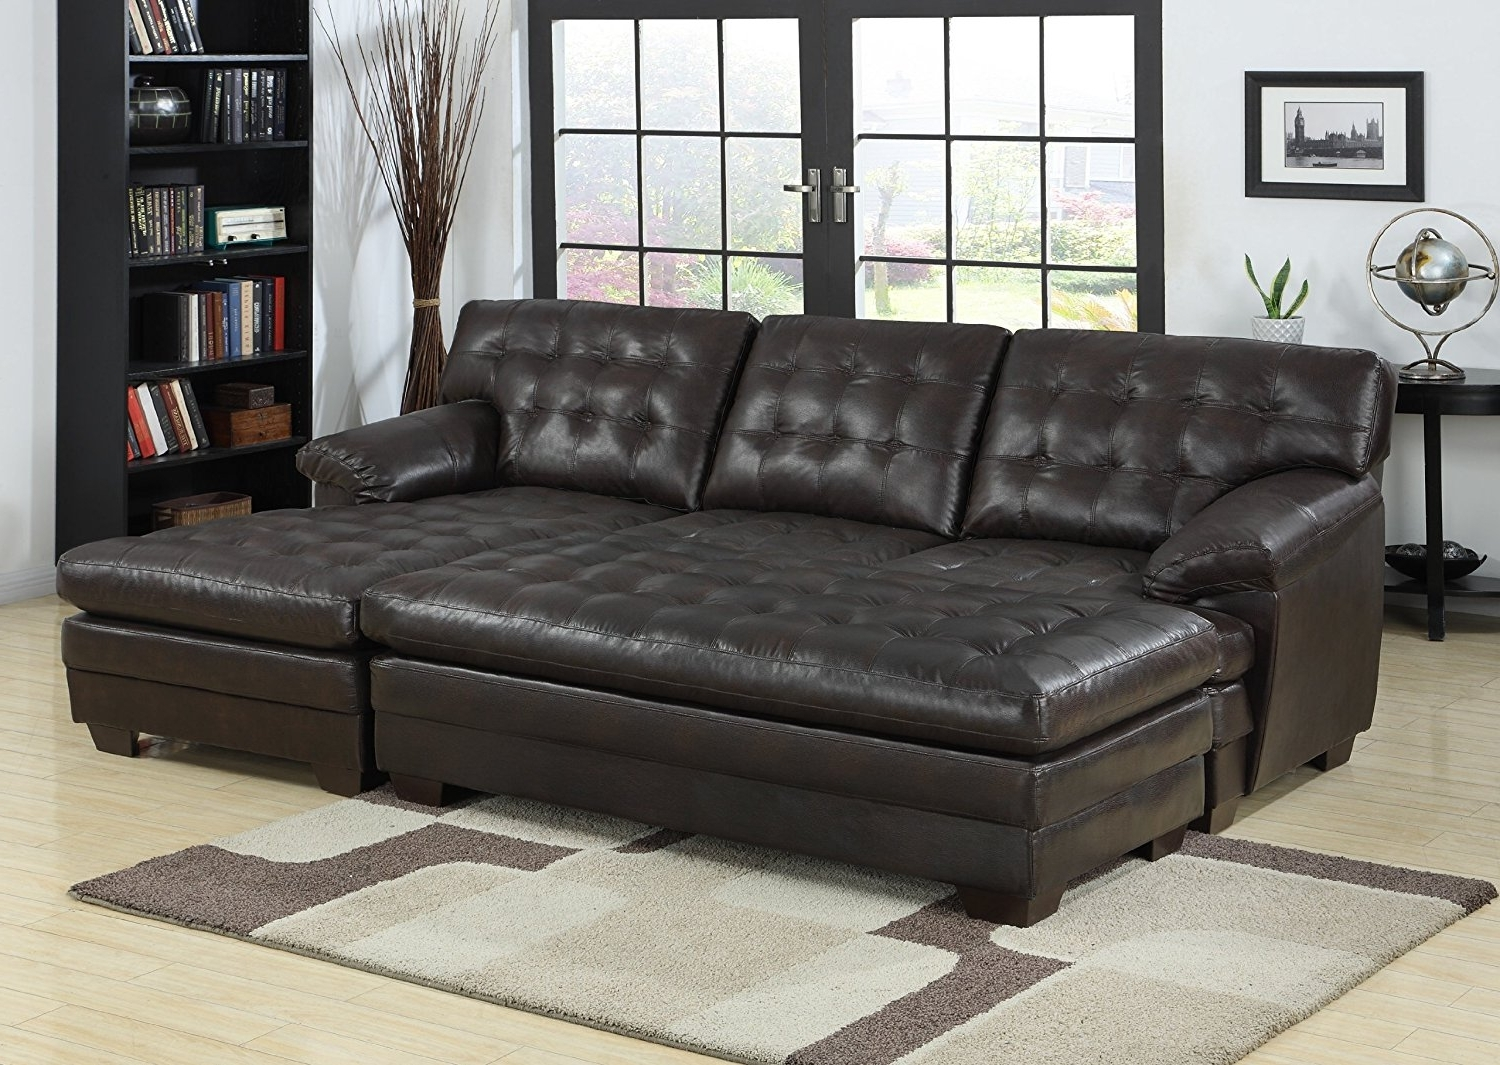 2018 Sectional Sofas With 2 Chaises Within Amazon: Homelegance 9739 Channel Tufted 2 Piece Sectional Sofa (View 6 of 15)